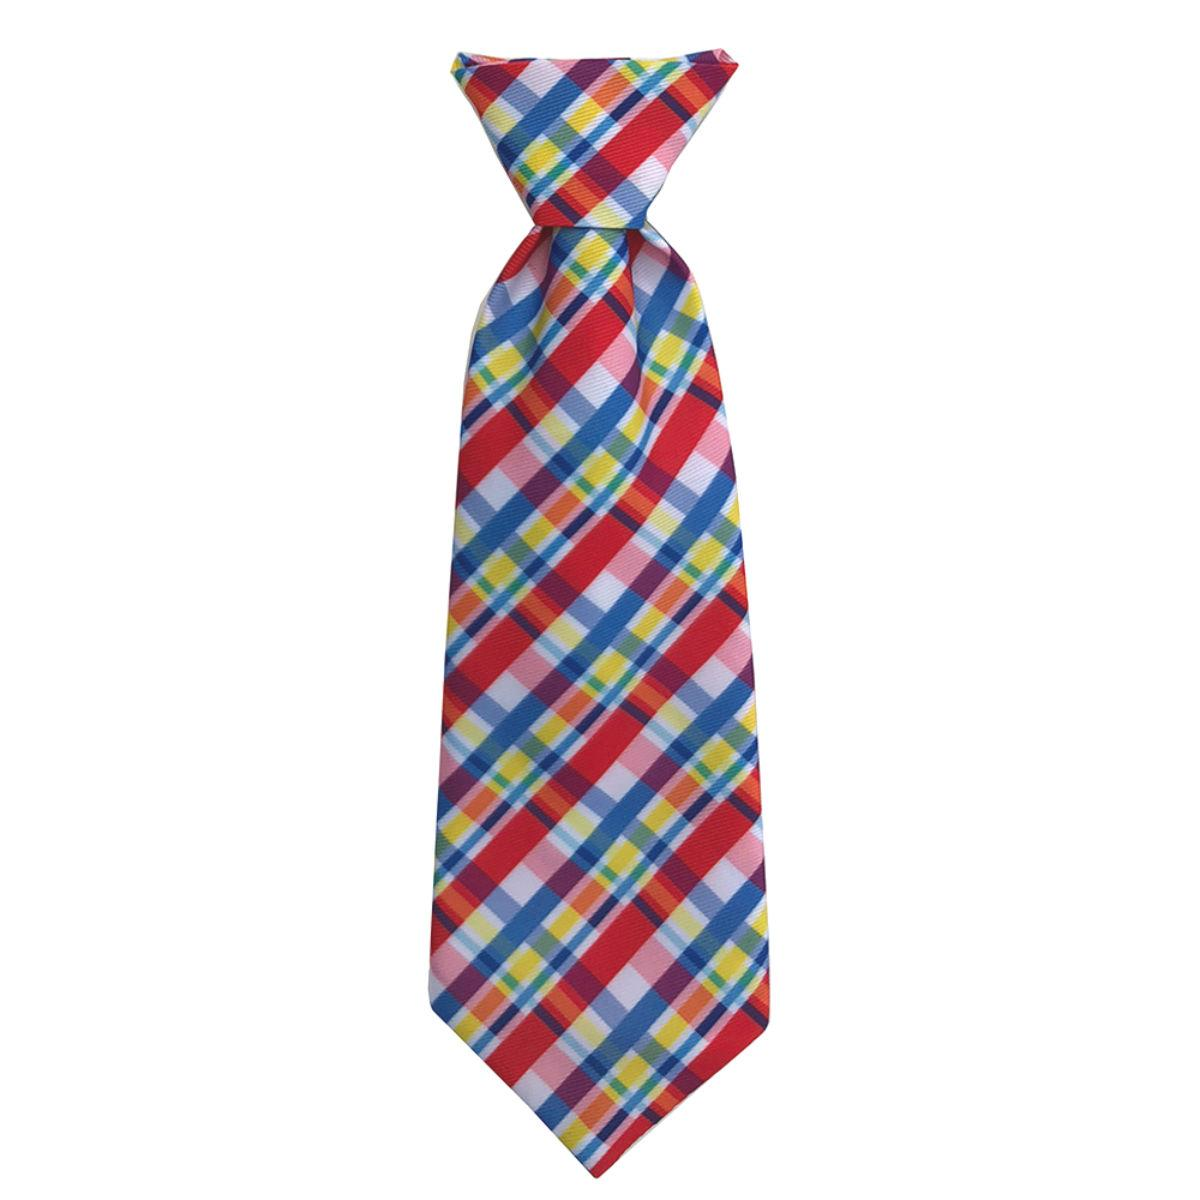 Huxley & Kent Long Tie Collar Attachment Dog Necktie - Preppy Plaid